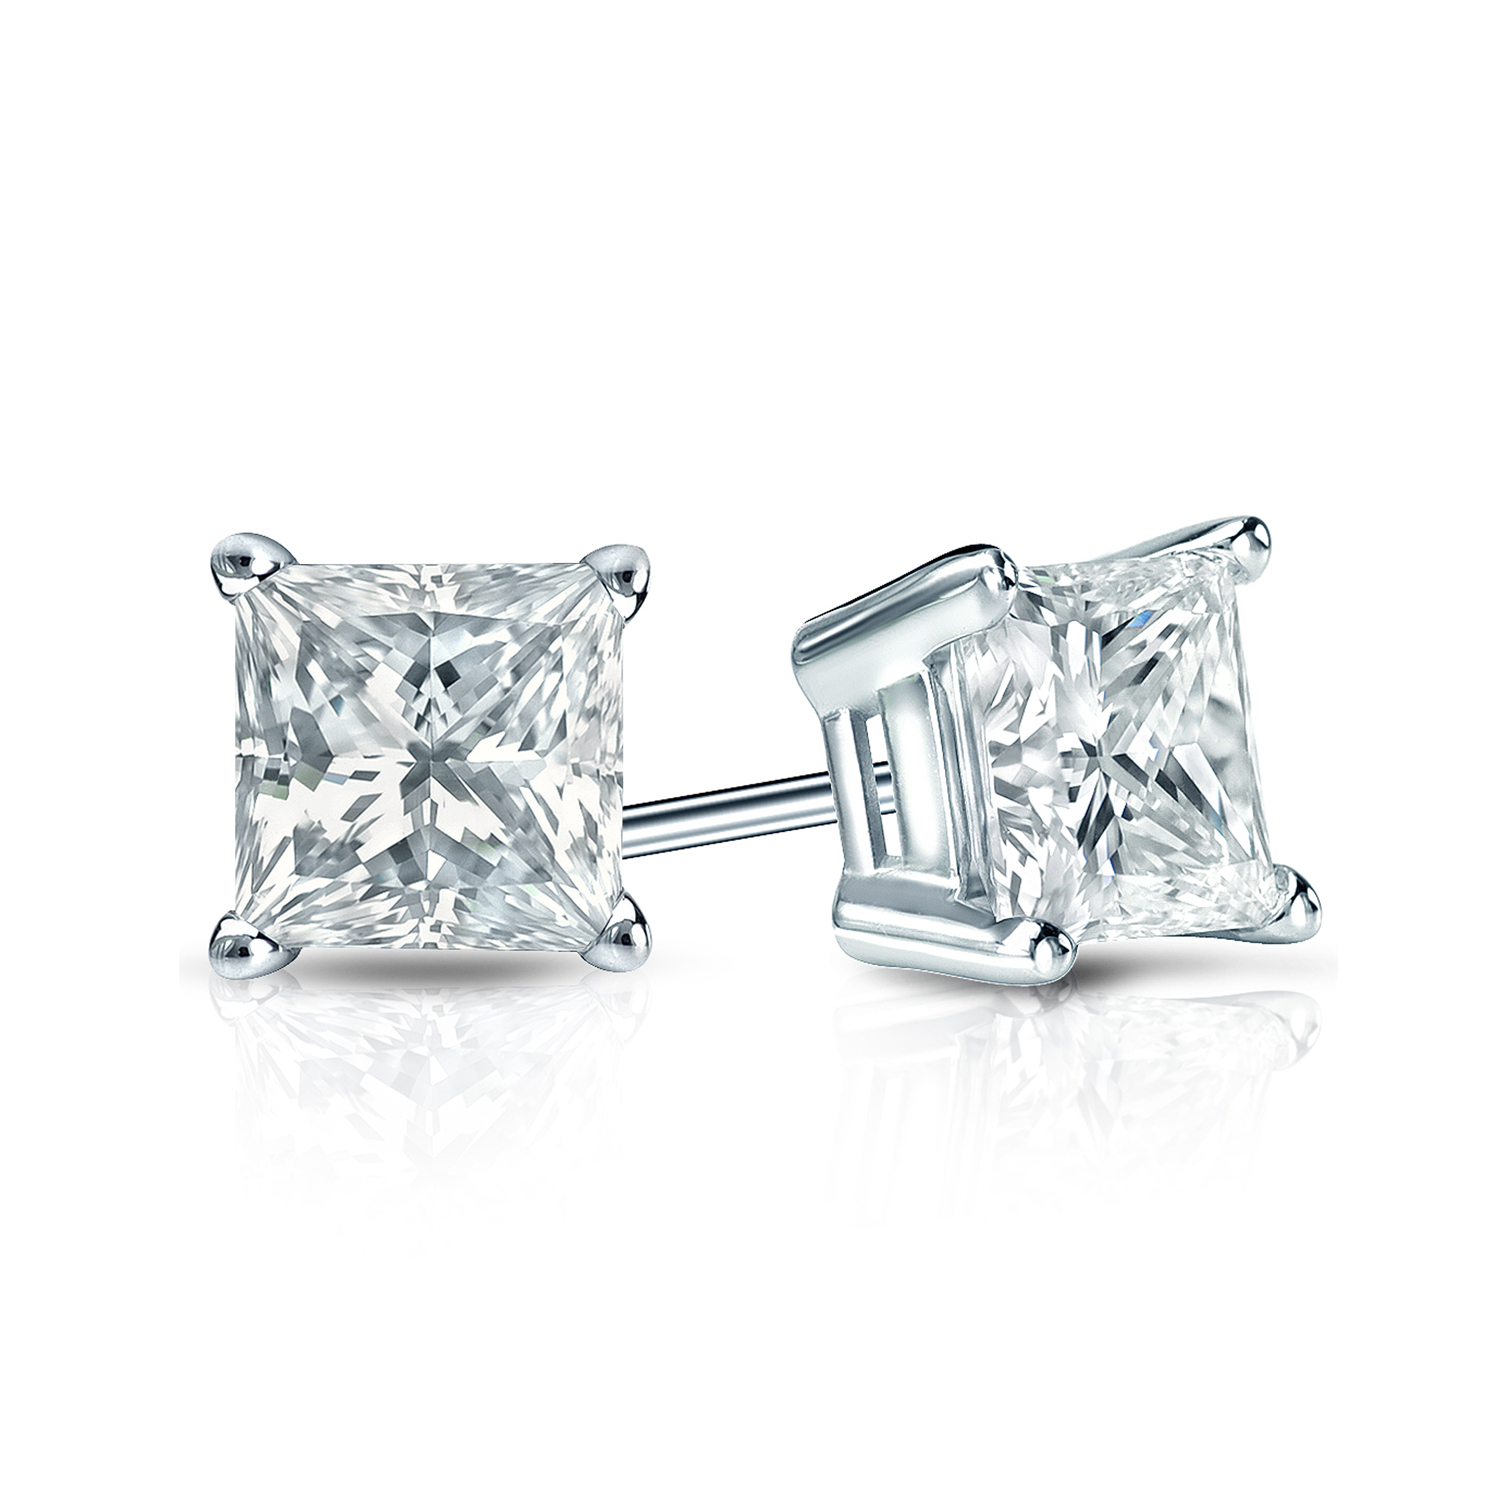 Certified 0.75 cttw Princess Diamond Stud Earrings in 14k White Gold 4-Prong Basket (G-H, SI)